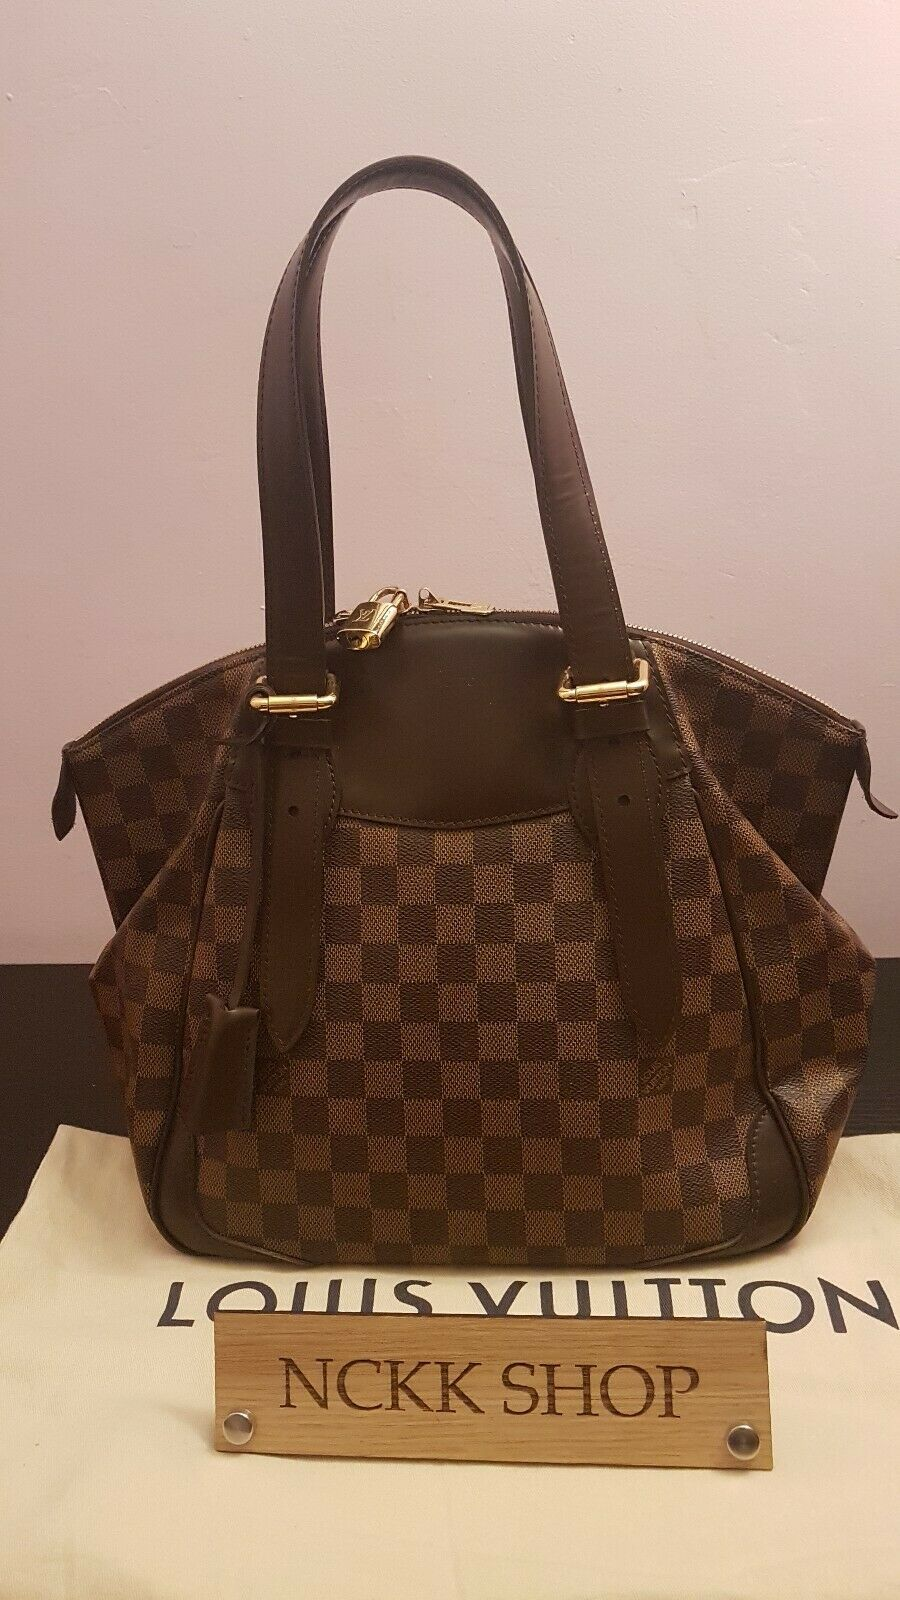 Authentic Louis Vuitton Verona MM Damier Ebene Canvas Schultertasche - 1.045.11,Kaufpreis 1,05,datum 01.07.2020 22:12:38,Website rebelle.com